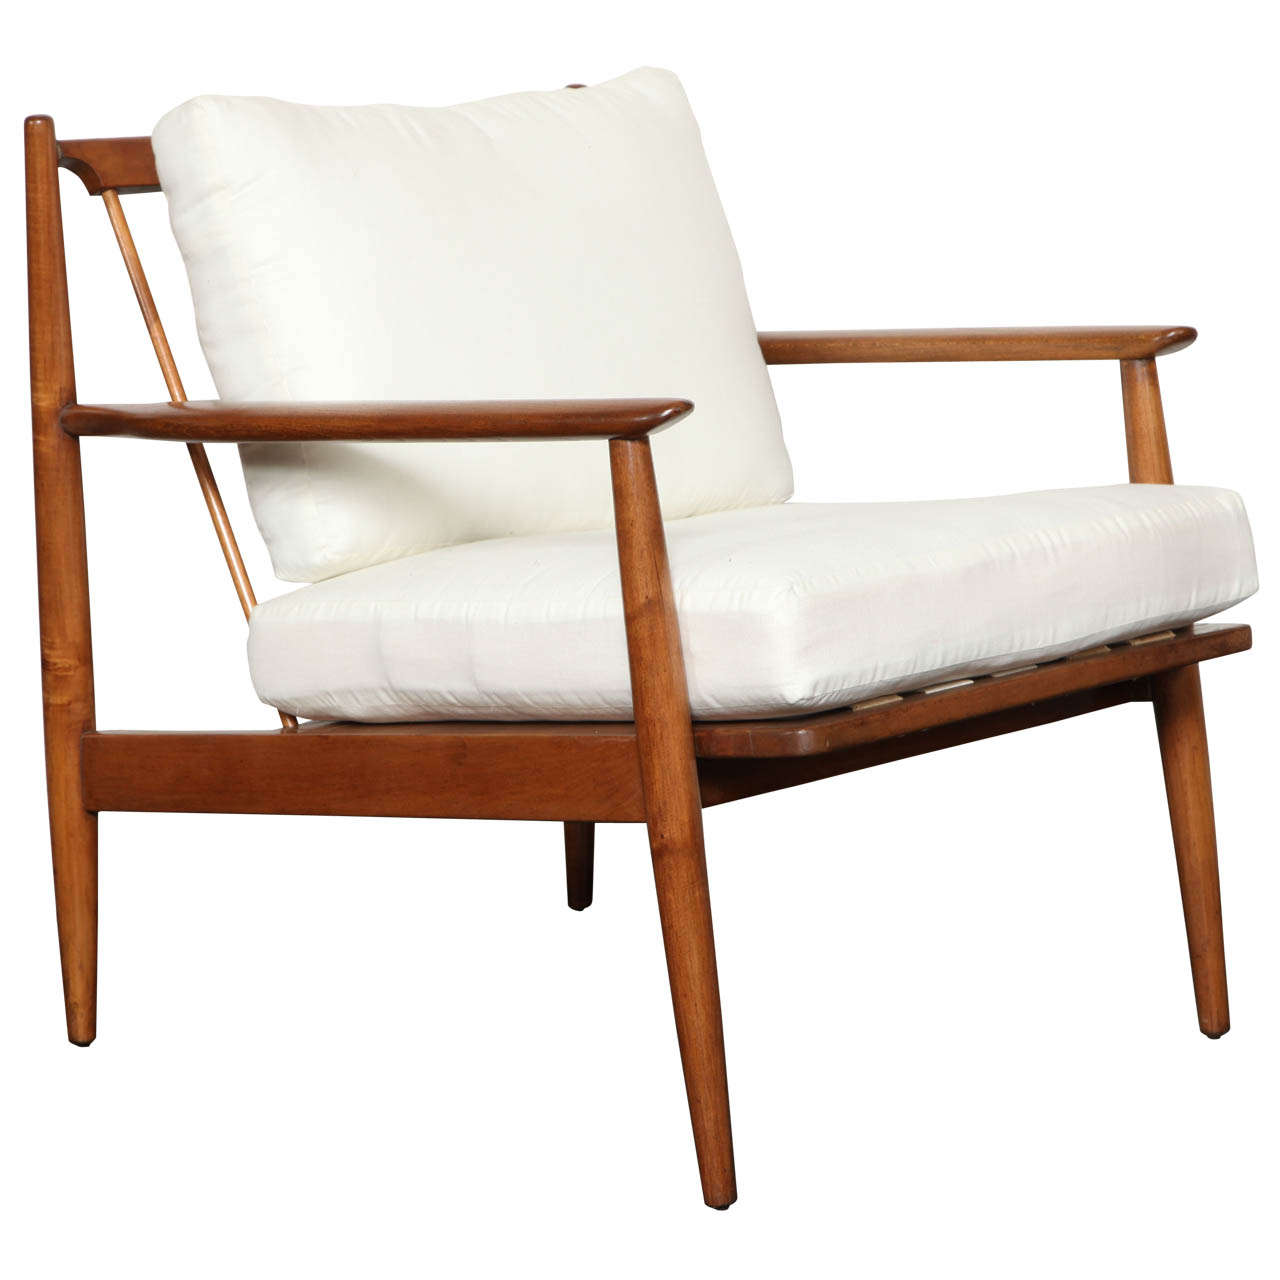 for Mid 20th century furniture